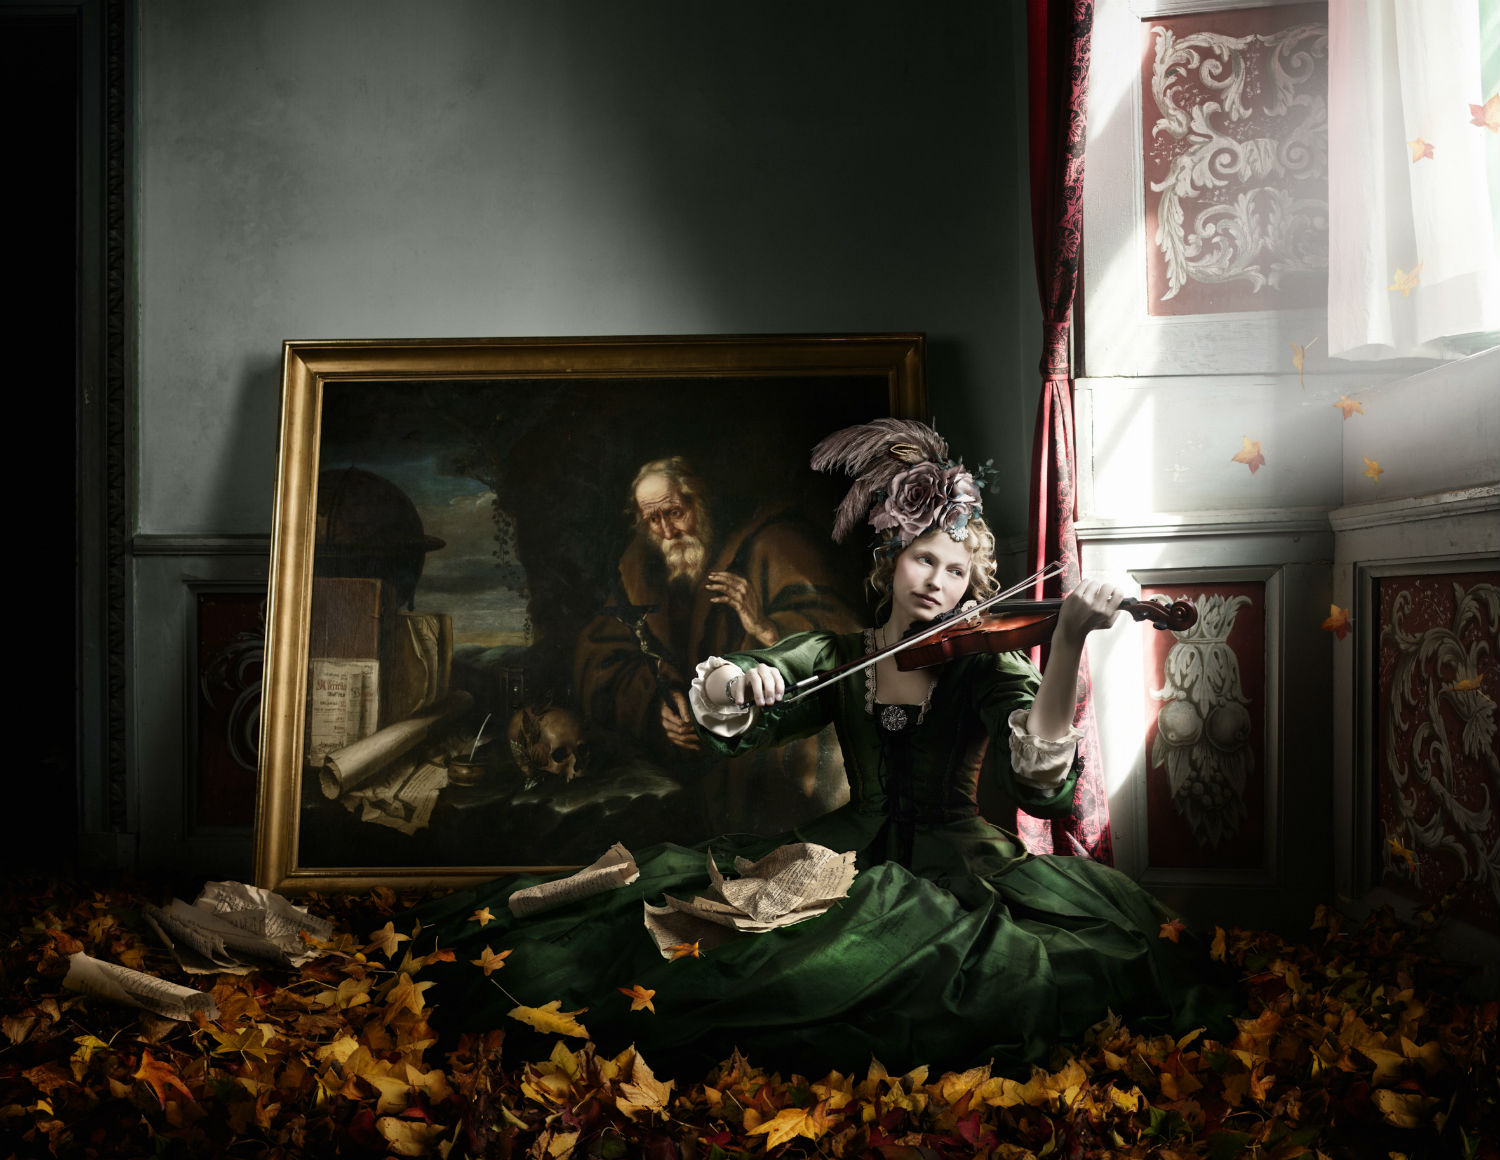 alexia sinclair photography history period detail model flemish detail autumn leaves